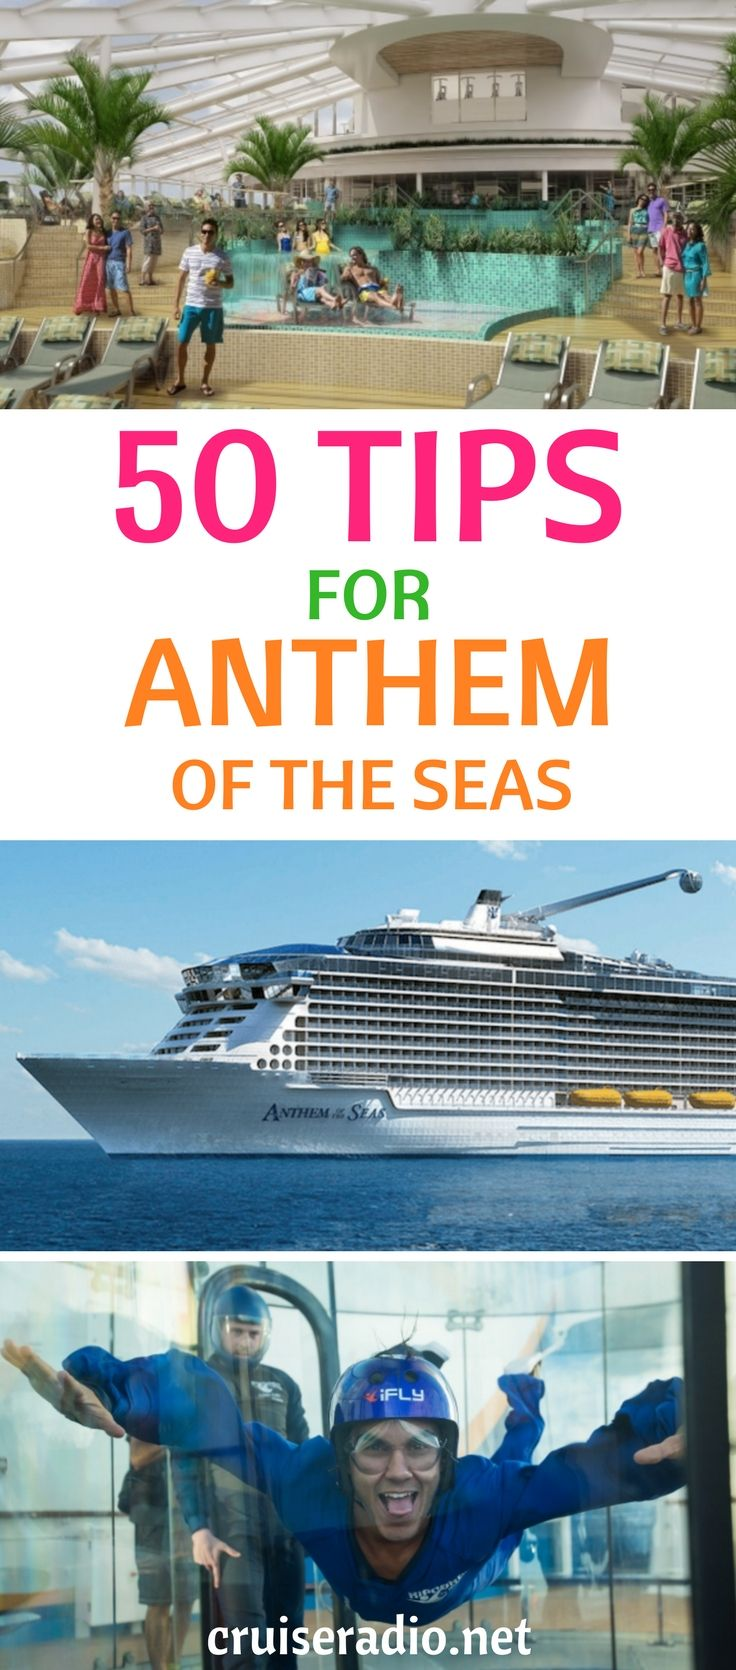 A list of tips and tricks for one of the largest cruise ships in the world - Royal Caribbean's Anthem of the Seas. Learn some tips that you might not know.